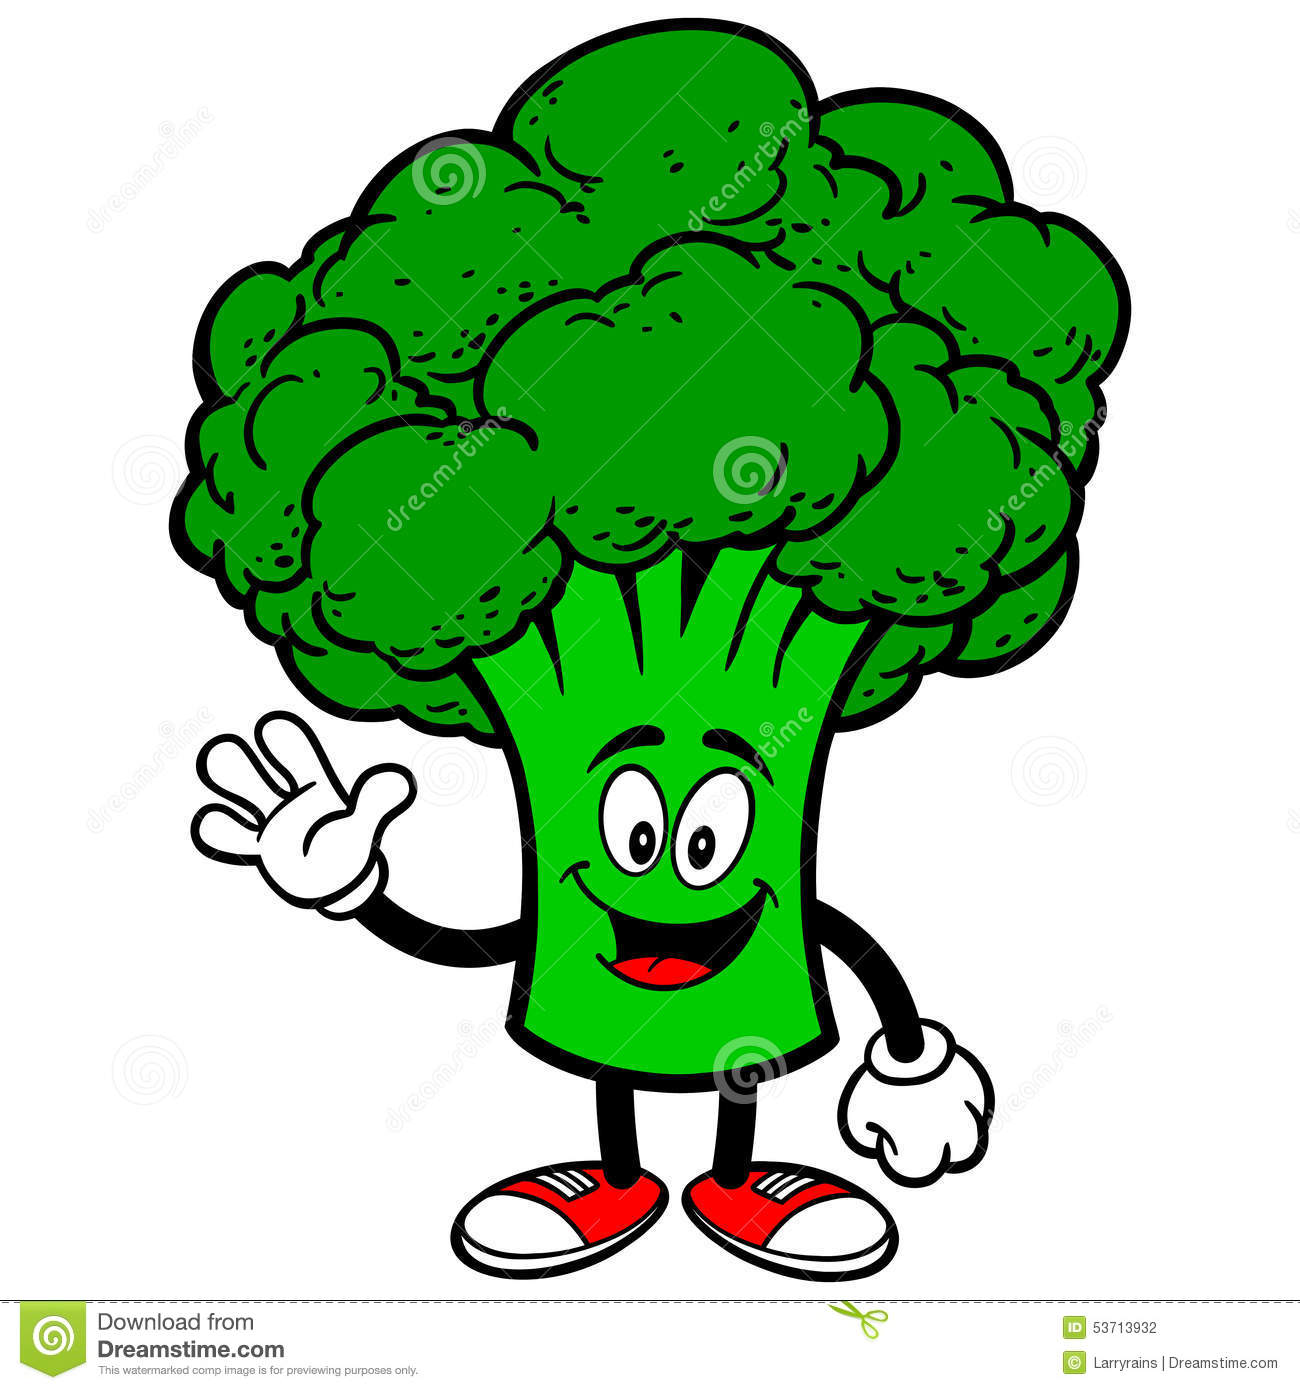 an overview of the broccoli vegetable in the food consumption Broccoli coffee is the latest food trend making headlines in australia  is still not  eating the recommended daily intake of vegetables a day, and.